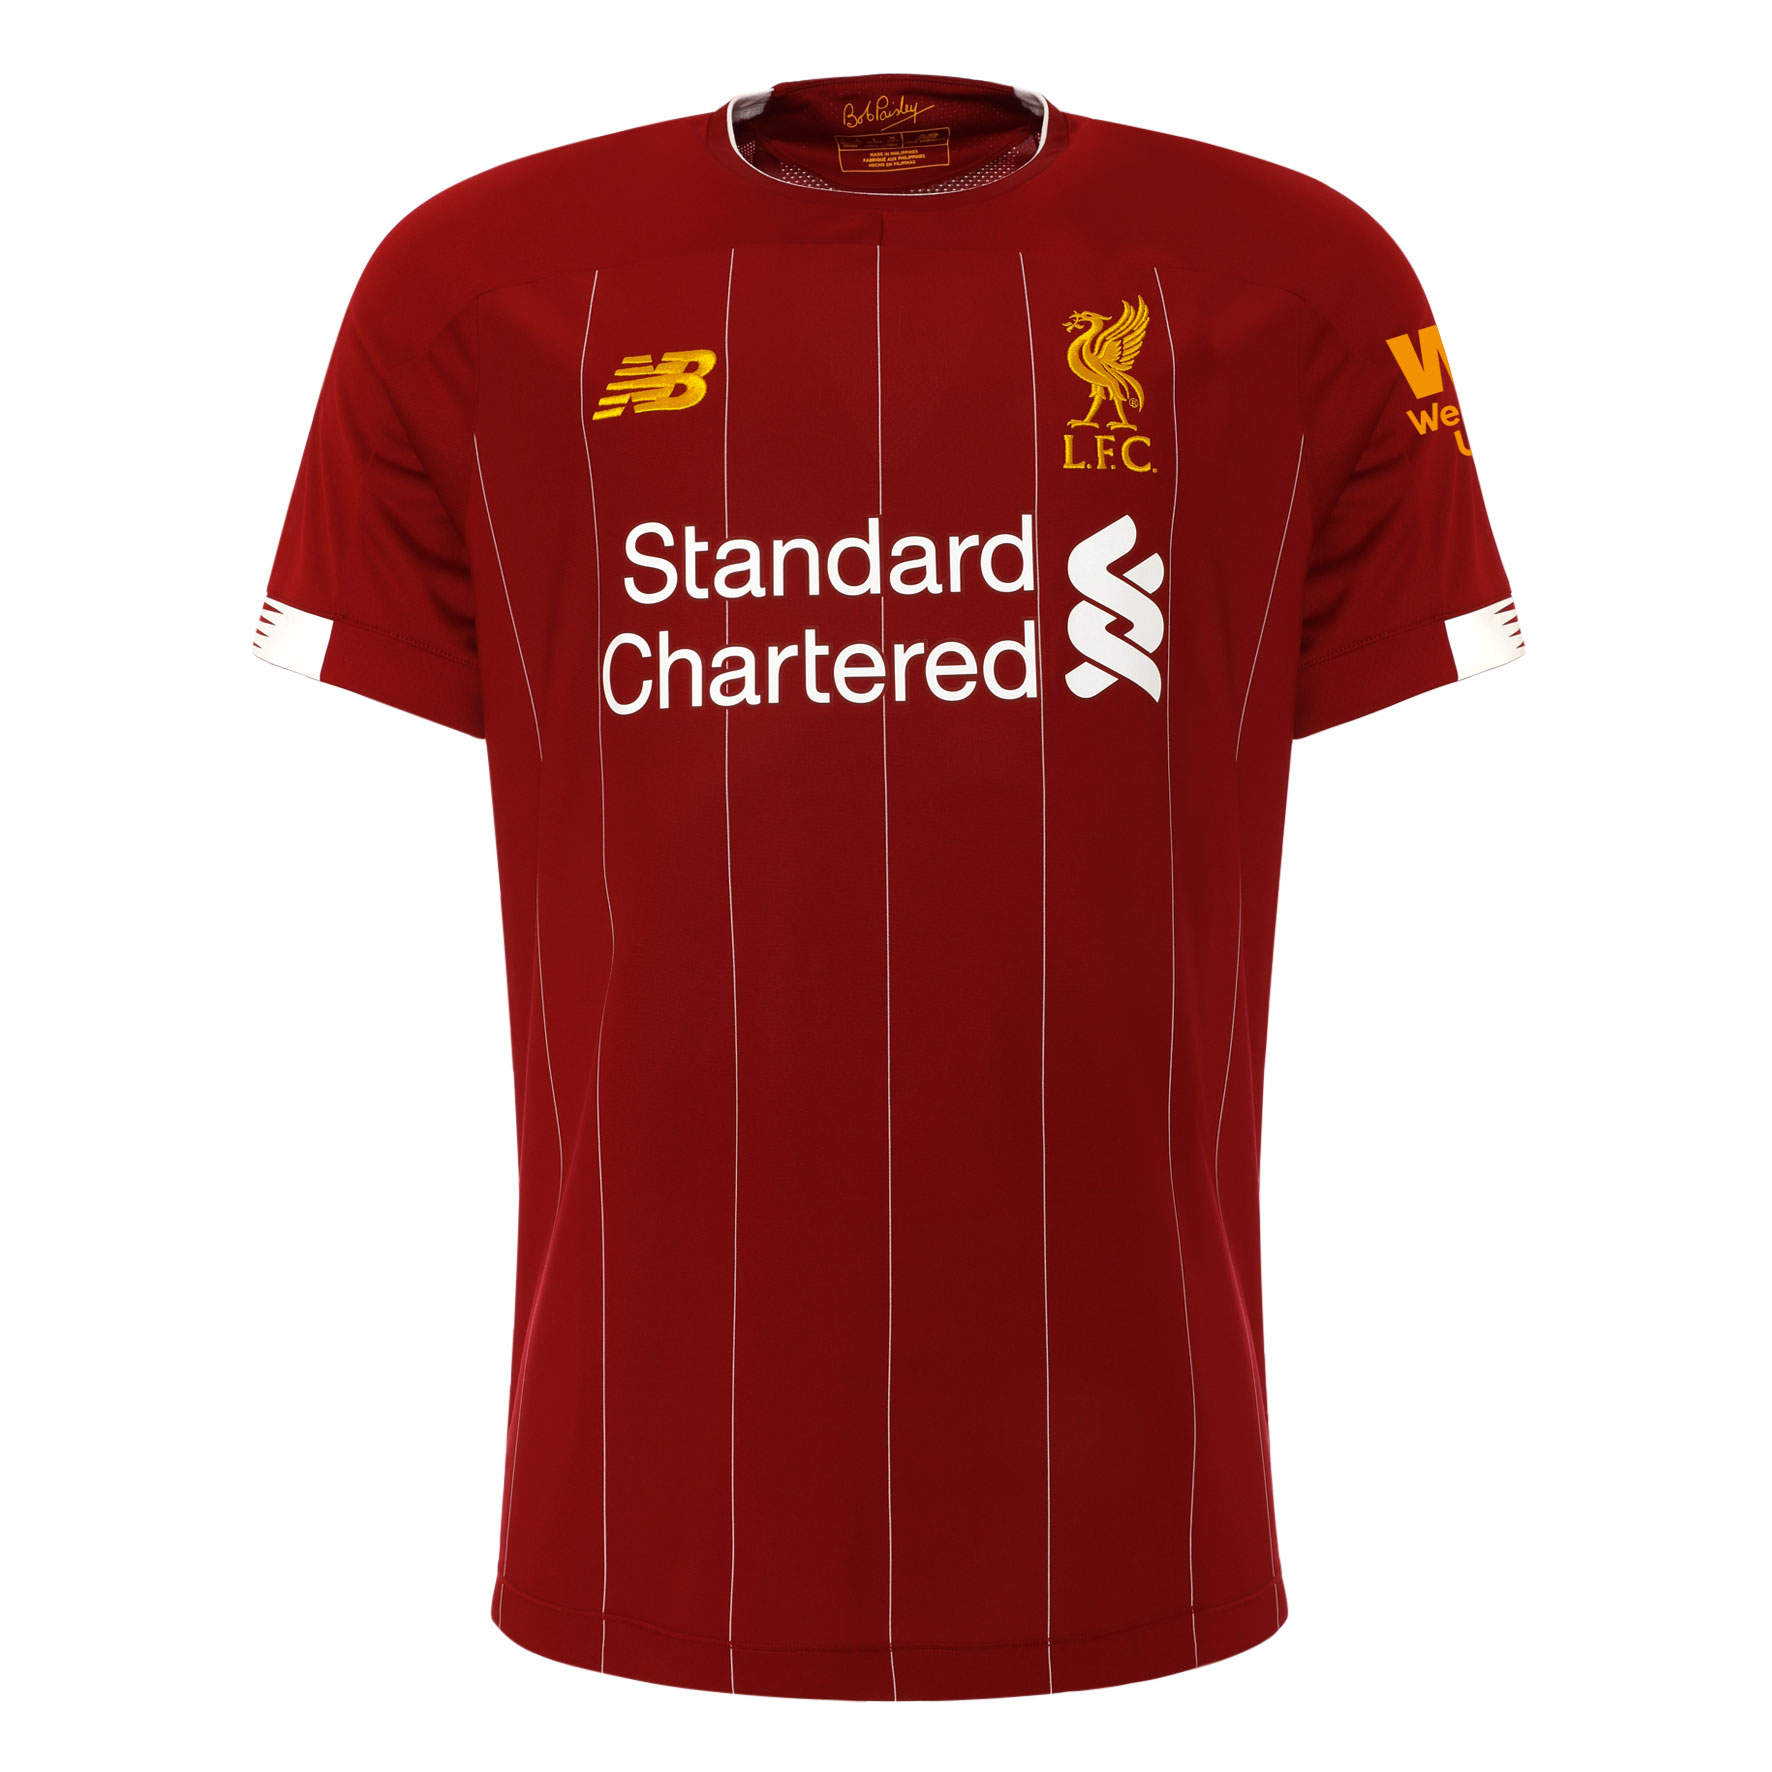 8306d3cc8 Liverpool s 2019-20 home kit revealed - pre-order now - Liverpool FC